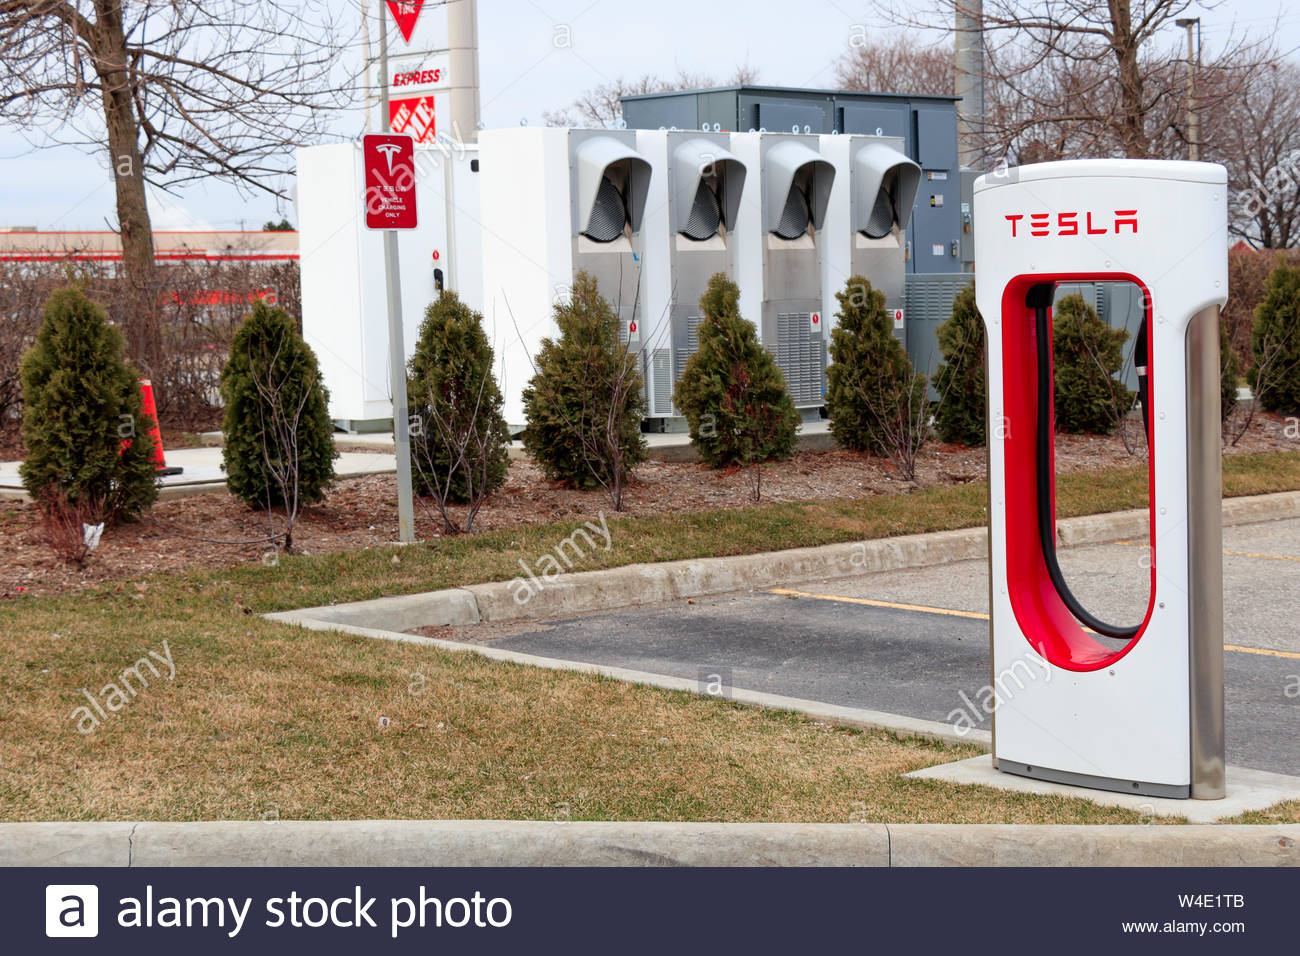 Tesla Supercharger Stall with Tesla powercharging technology in 1300x956